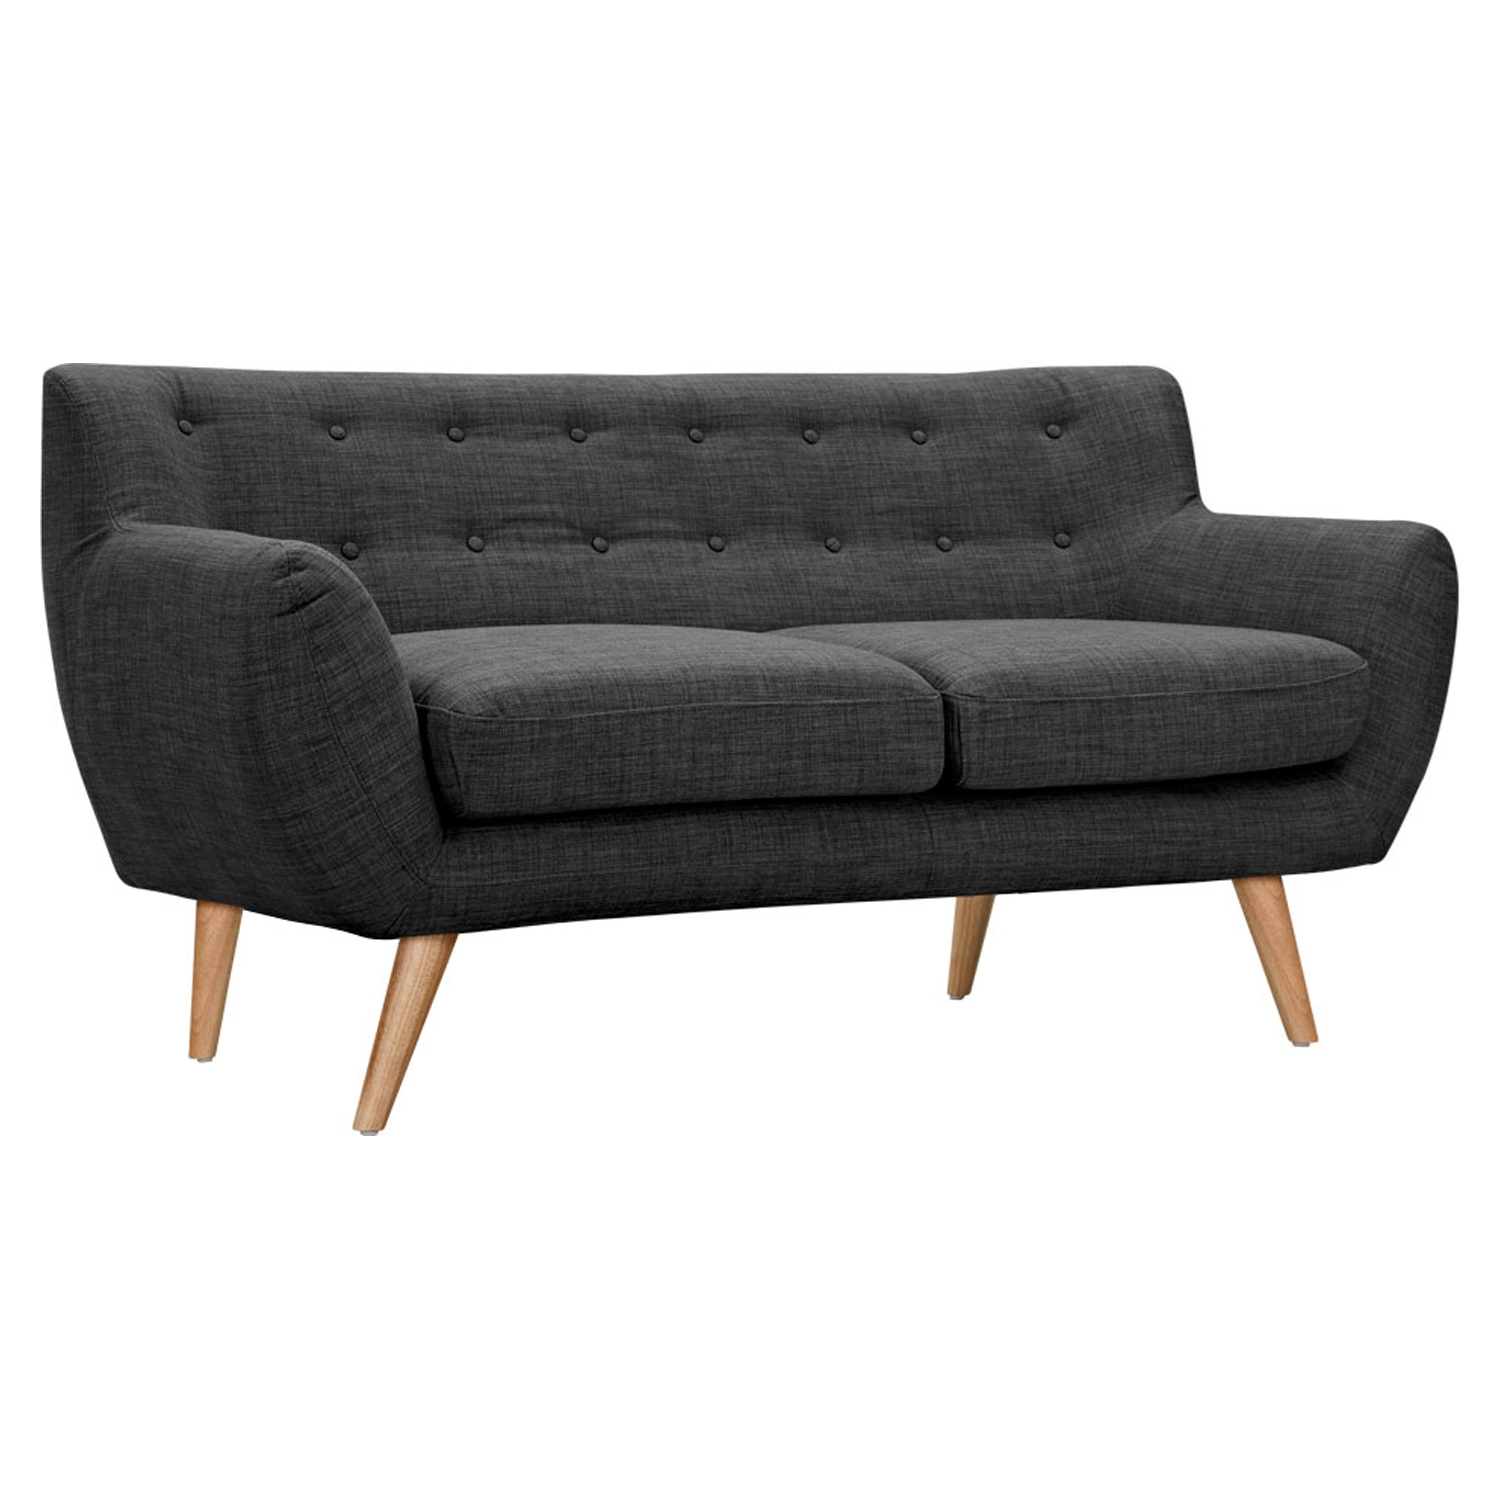 Ida Button Tufted Upholstery Loveseat- Charcoal Gray